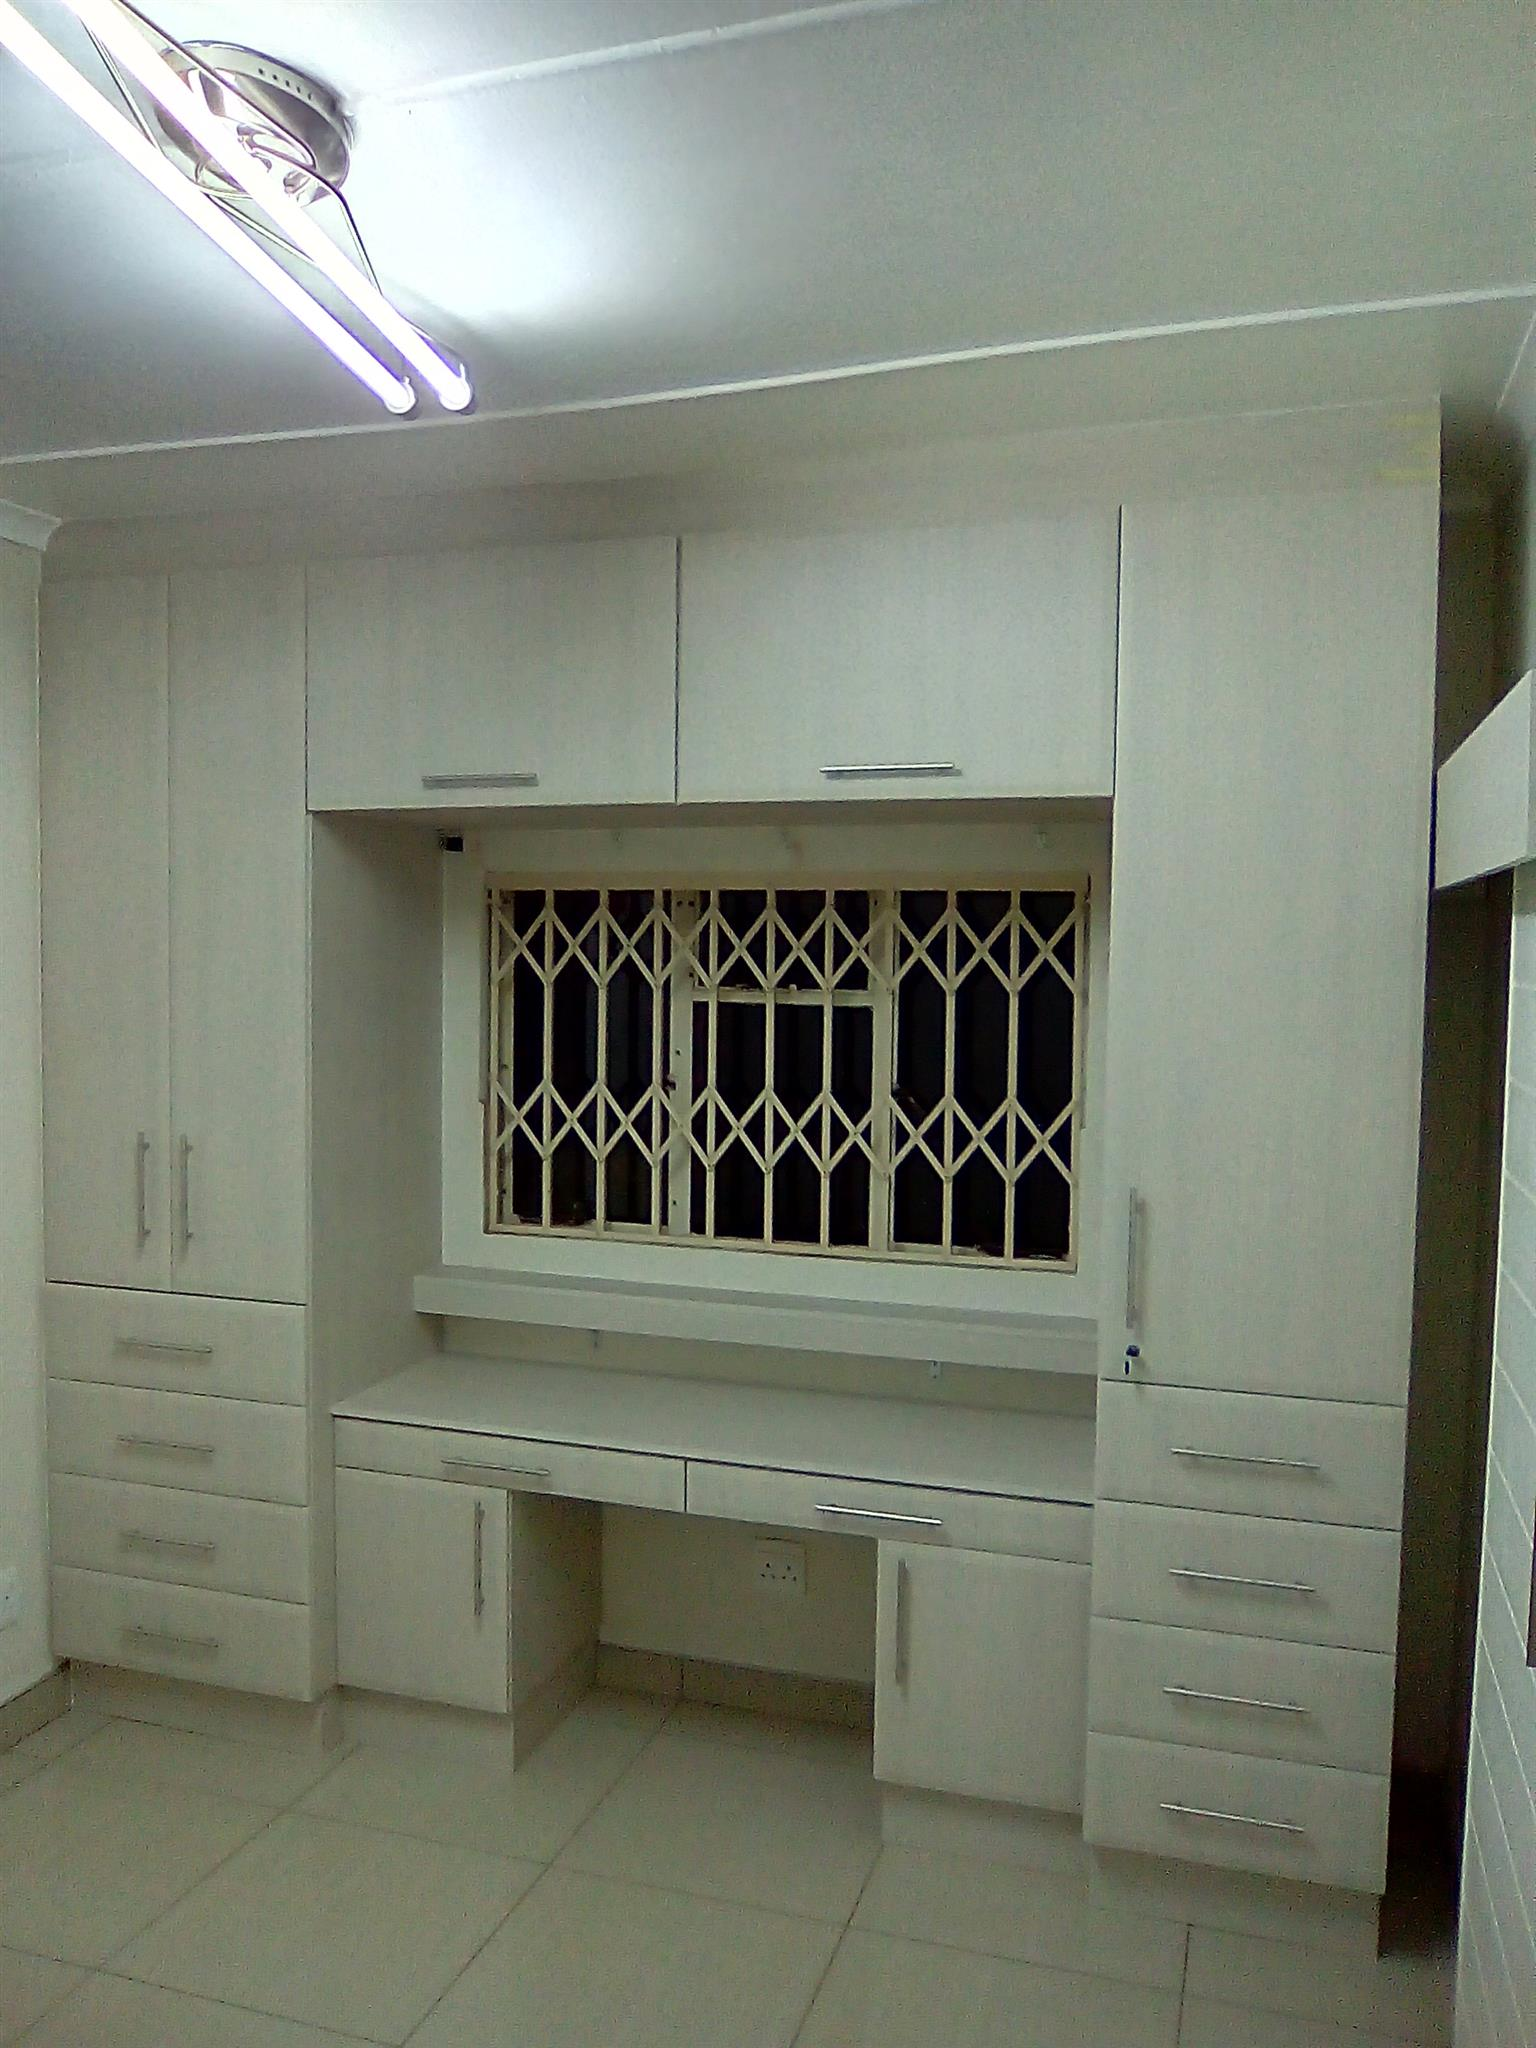 Kitchen and bedroom units